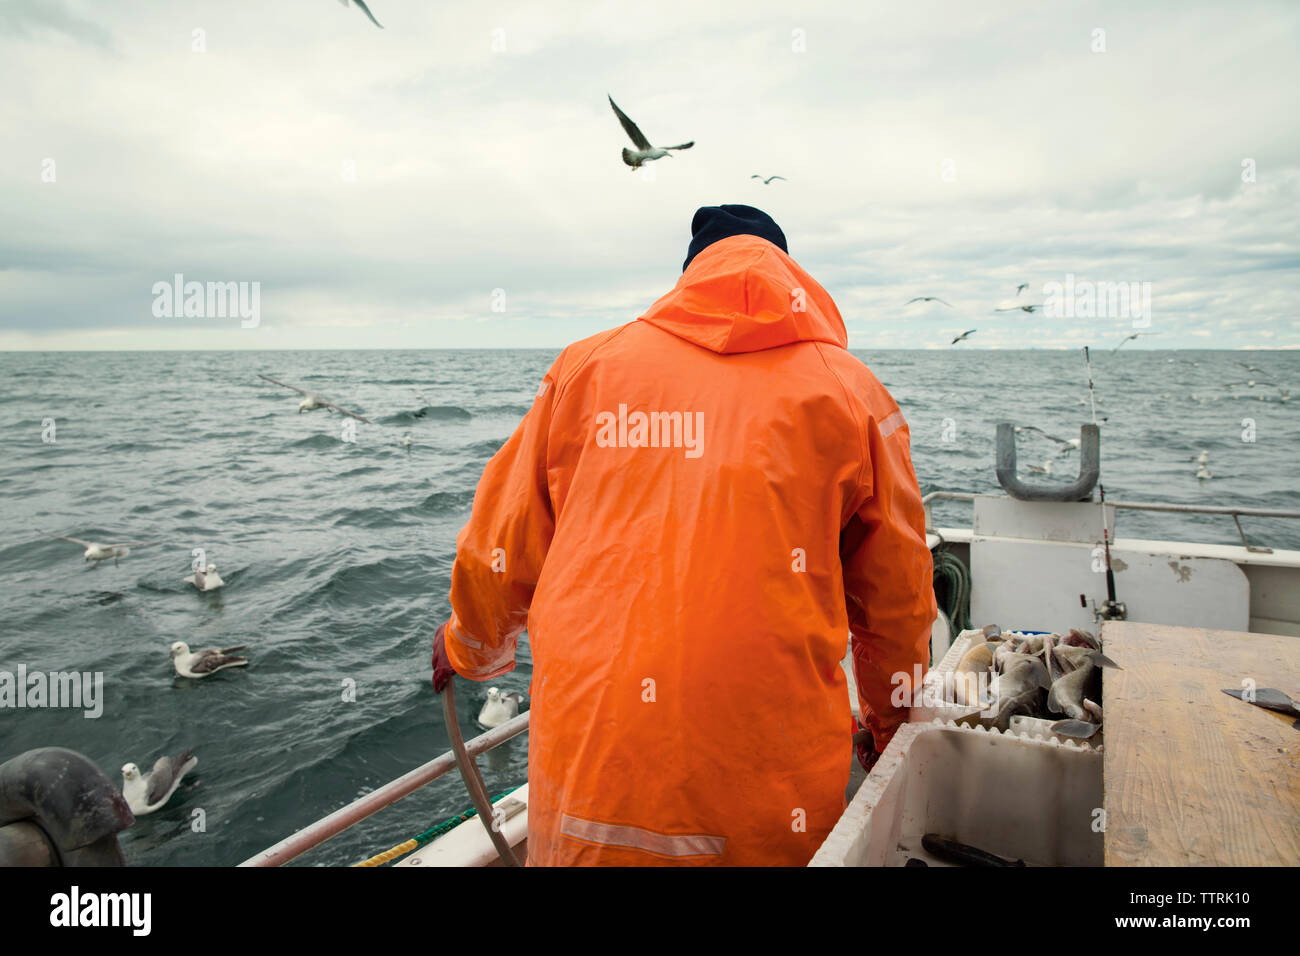 Rear view of fisherman standing on fishing boat at sea against cloudy sky Stock Photo